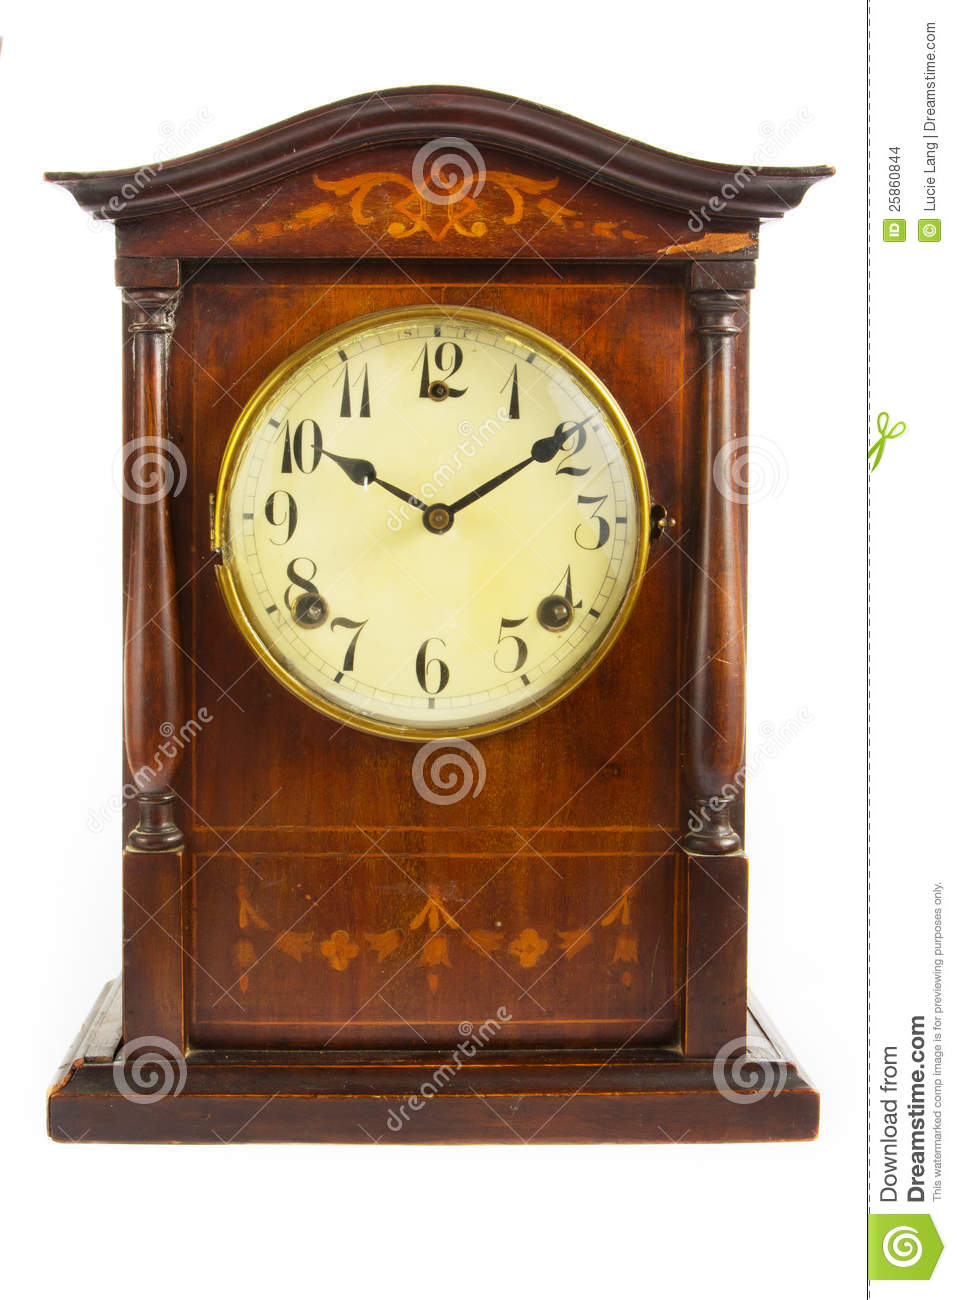 vieille horloge en bois antique sur le blanc photo stock image 25860844. Black Bedroom Furniture Sets. Home Design Ideas